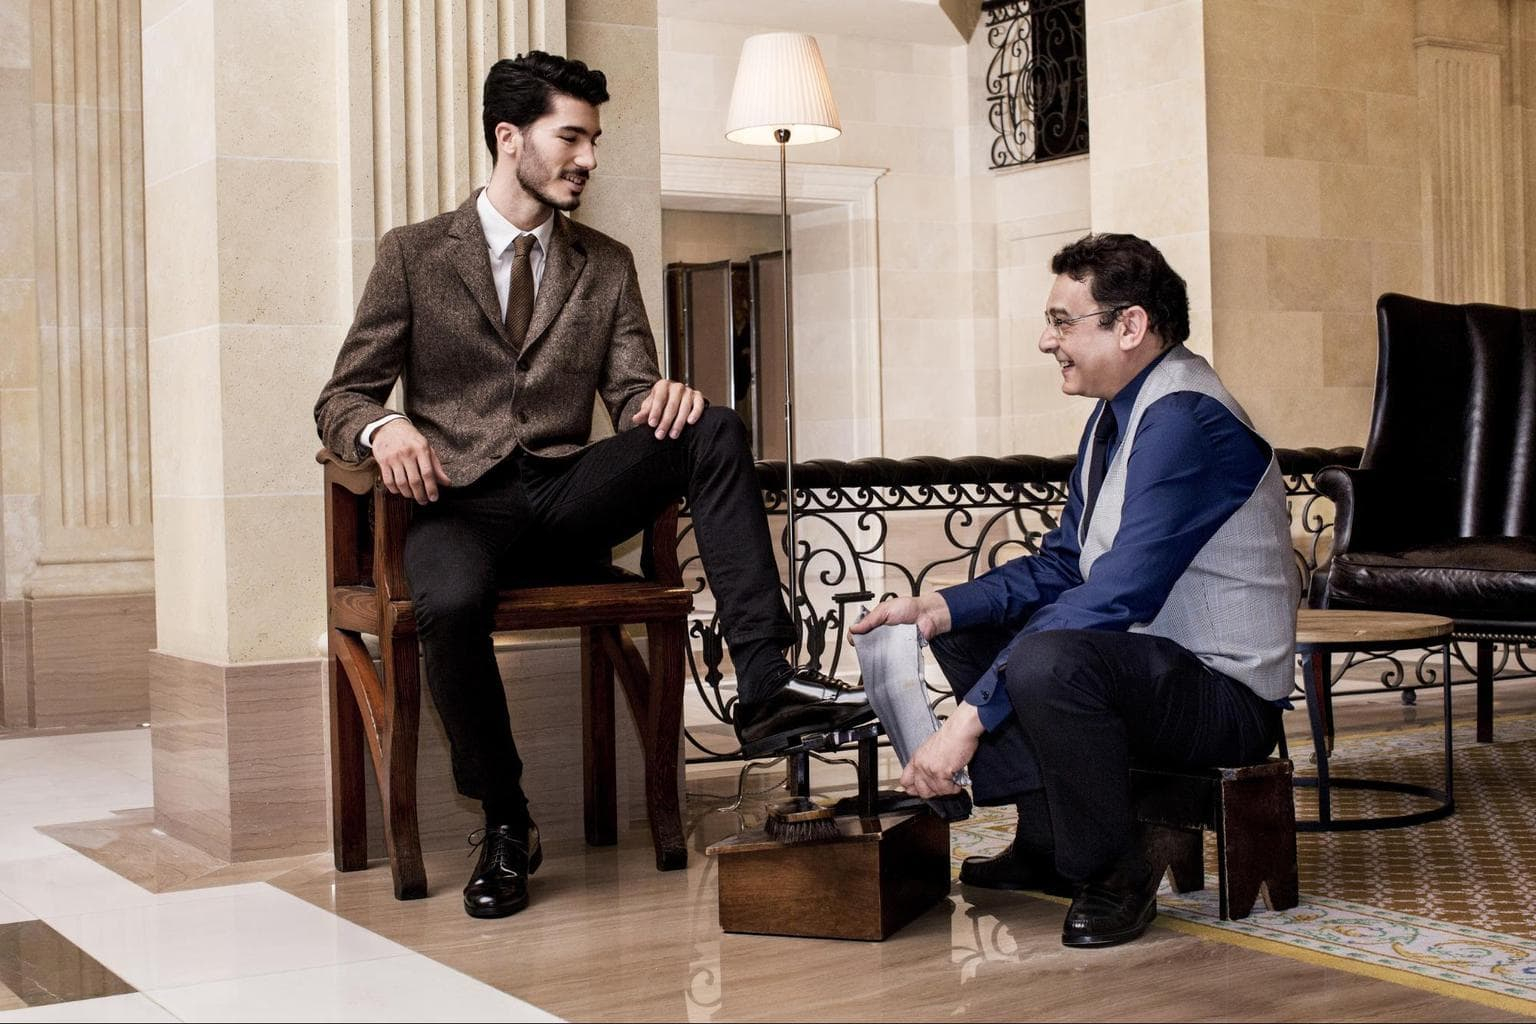 Shoe shine at Majestic Hotel & Spa Barcelona